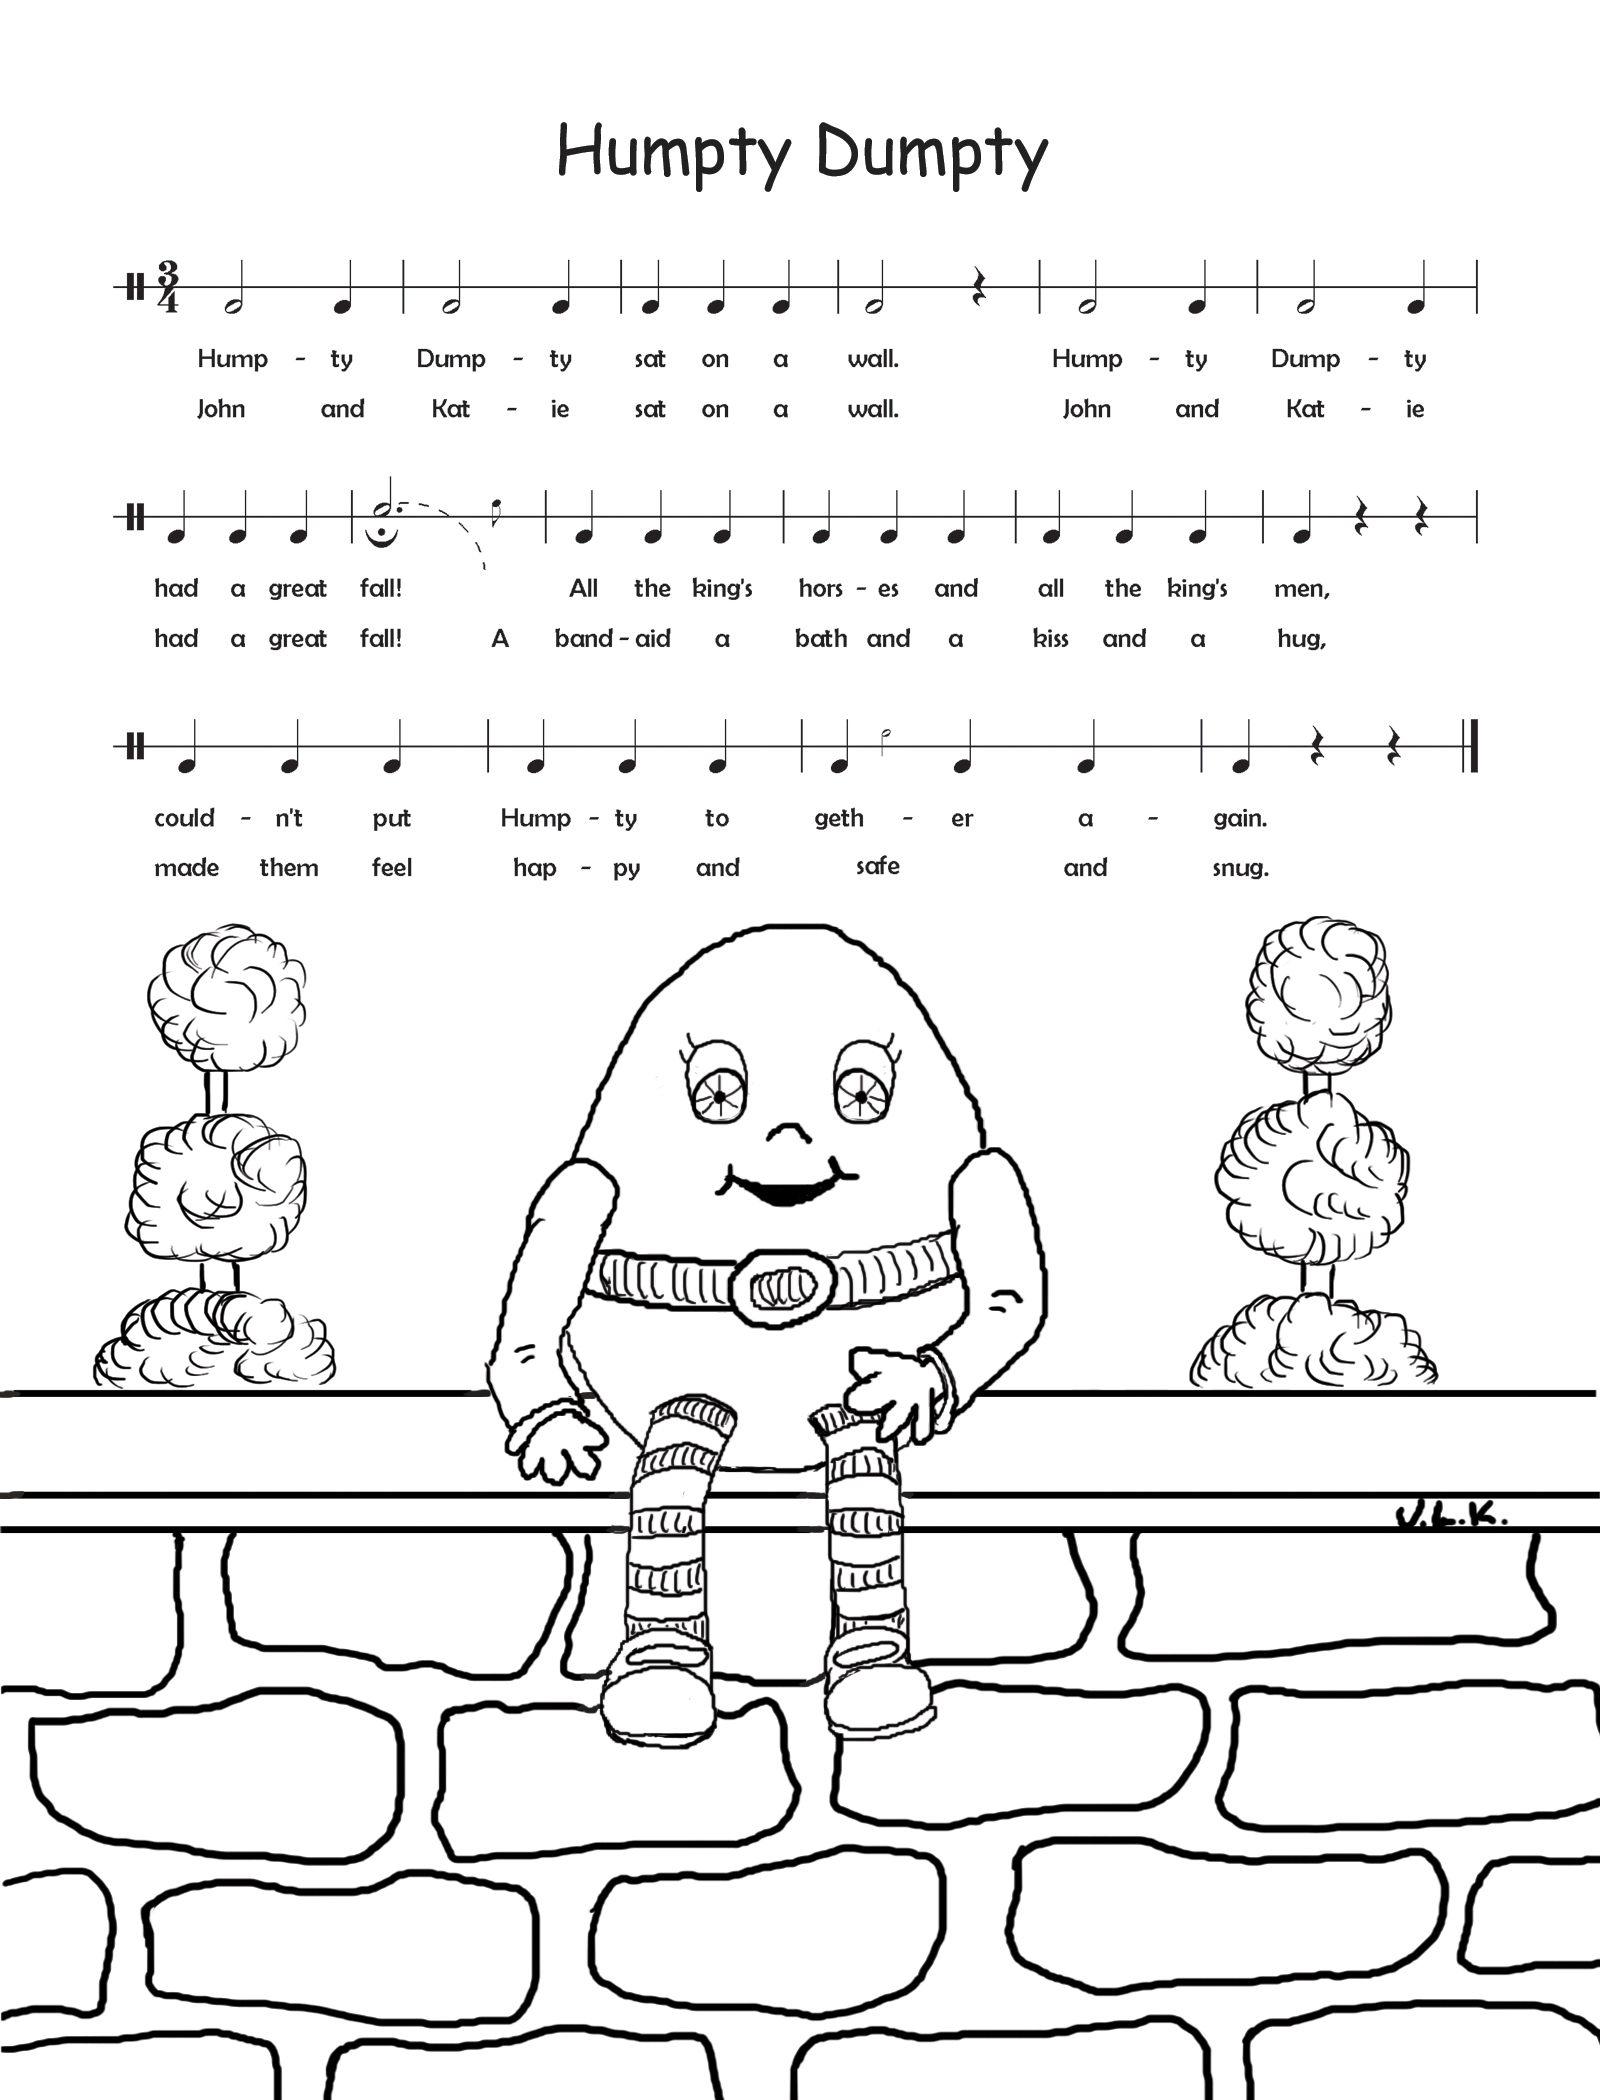 Free Downloadable Coloring Pages | Catholic Music for Kids